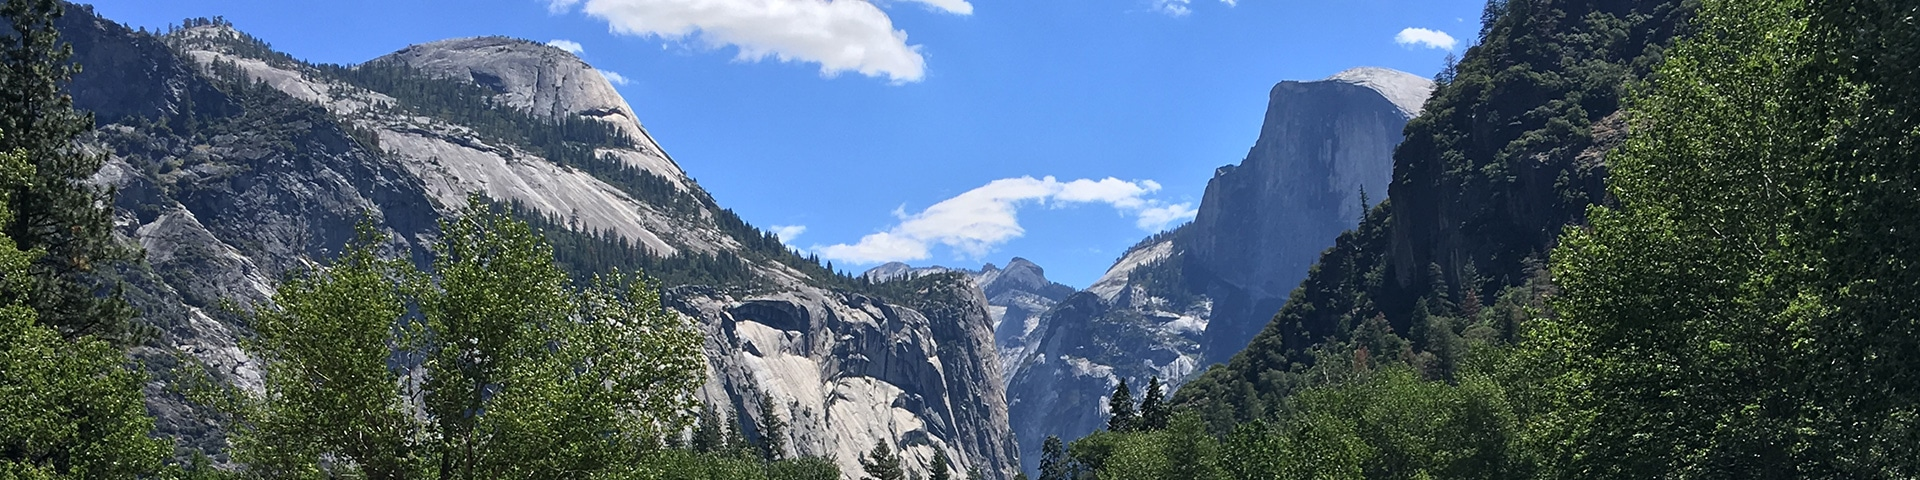 Panorama of the Yosemite Valley hike in Yosemite National Park